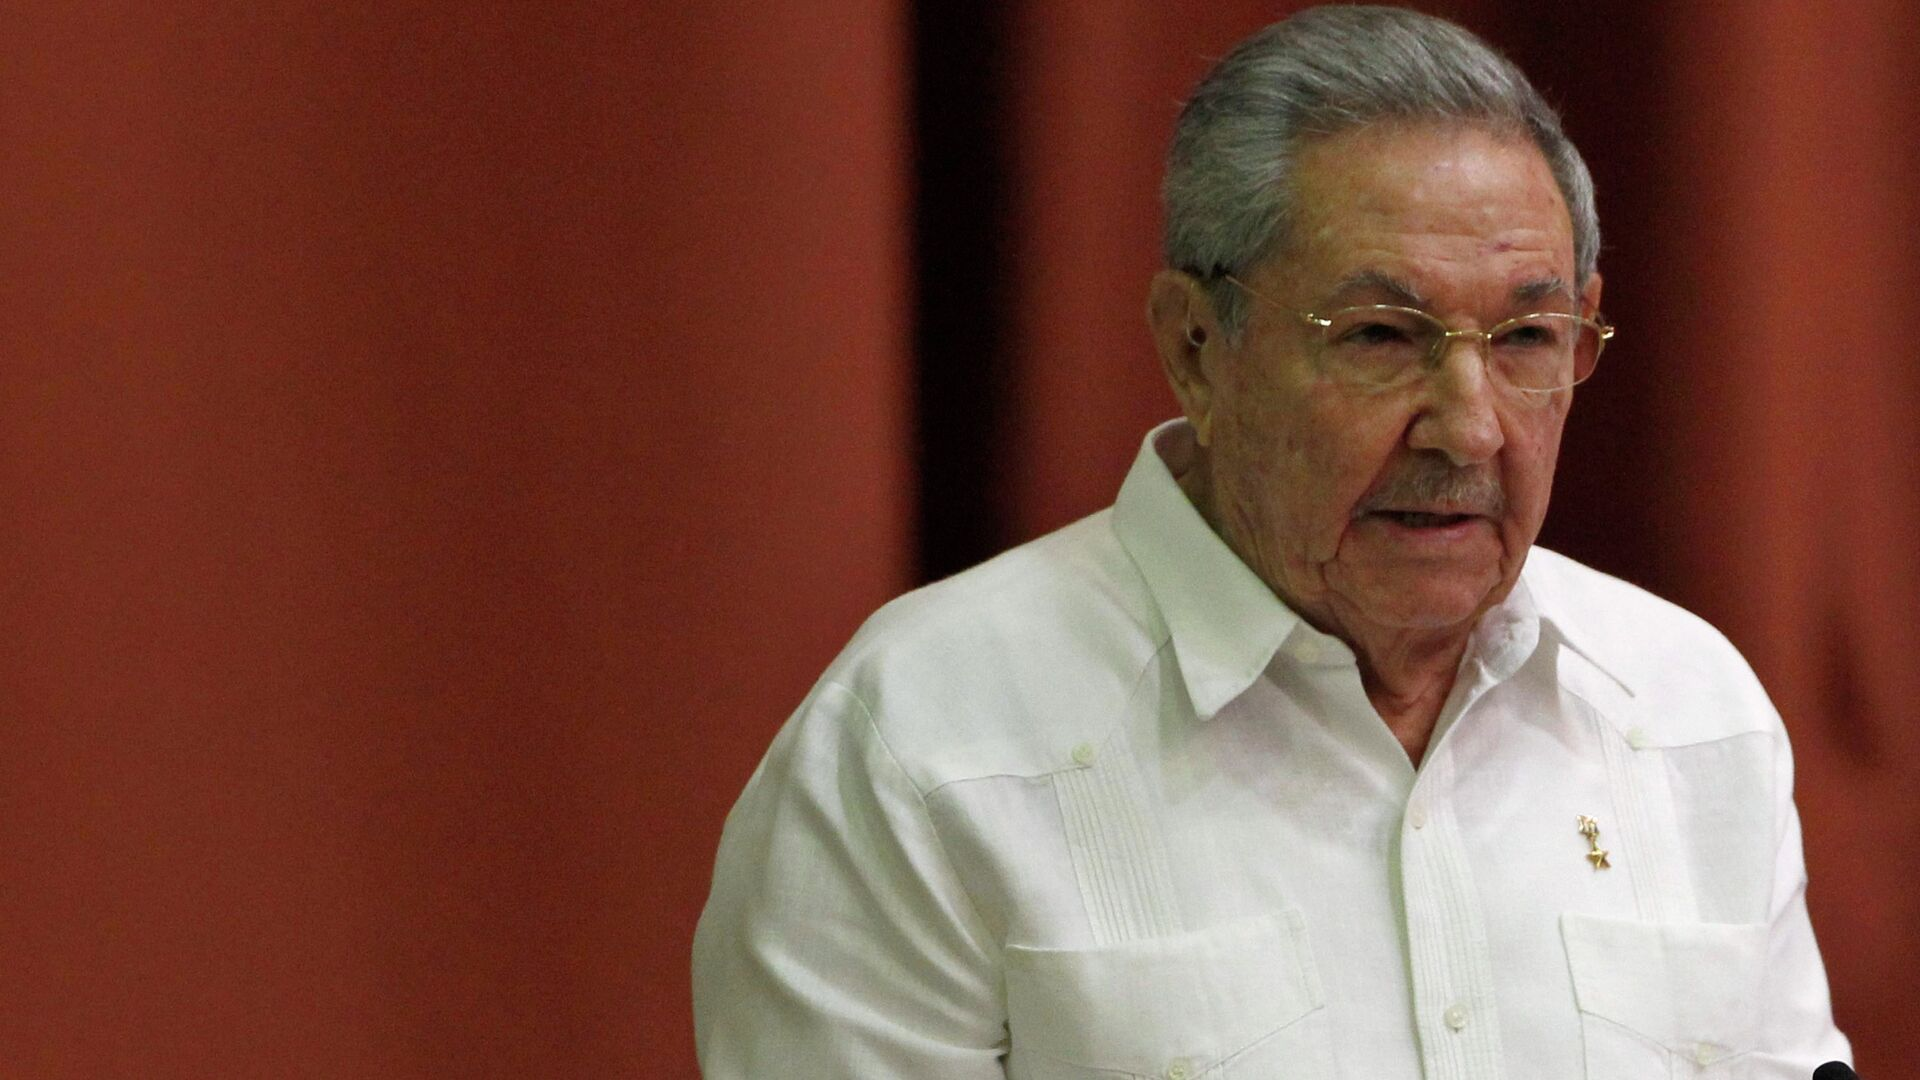 Cuba's President Raul Castro addresses the audience during the National Assembly in Havana December 20, 2014. - Sputnik Mundo, 1920, 16.04.2021